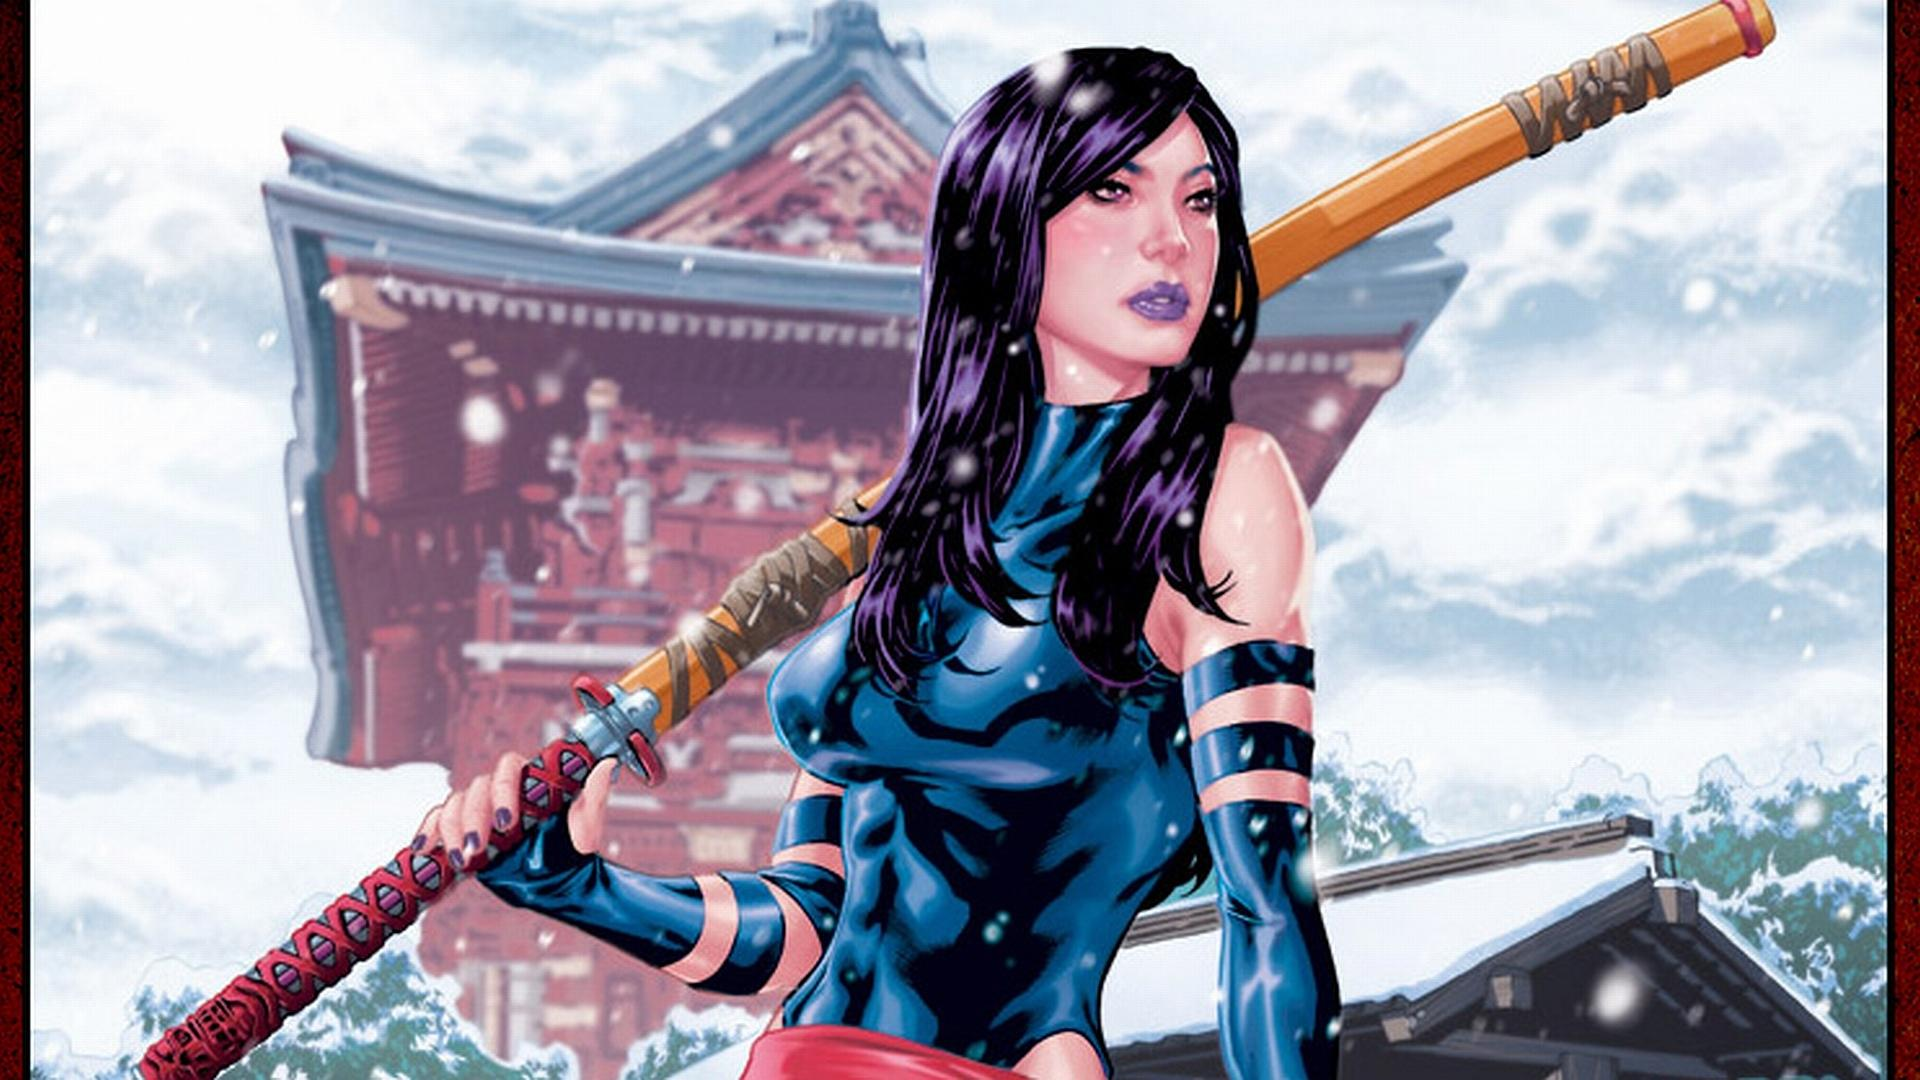 Psylocke Comics wallpapers HD quality